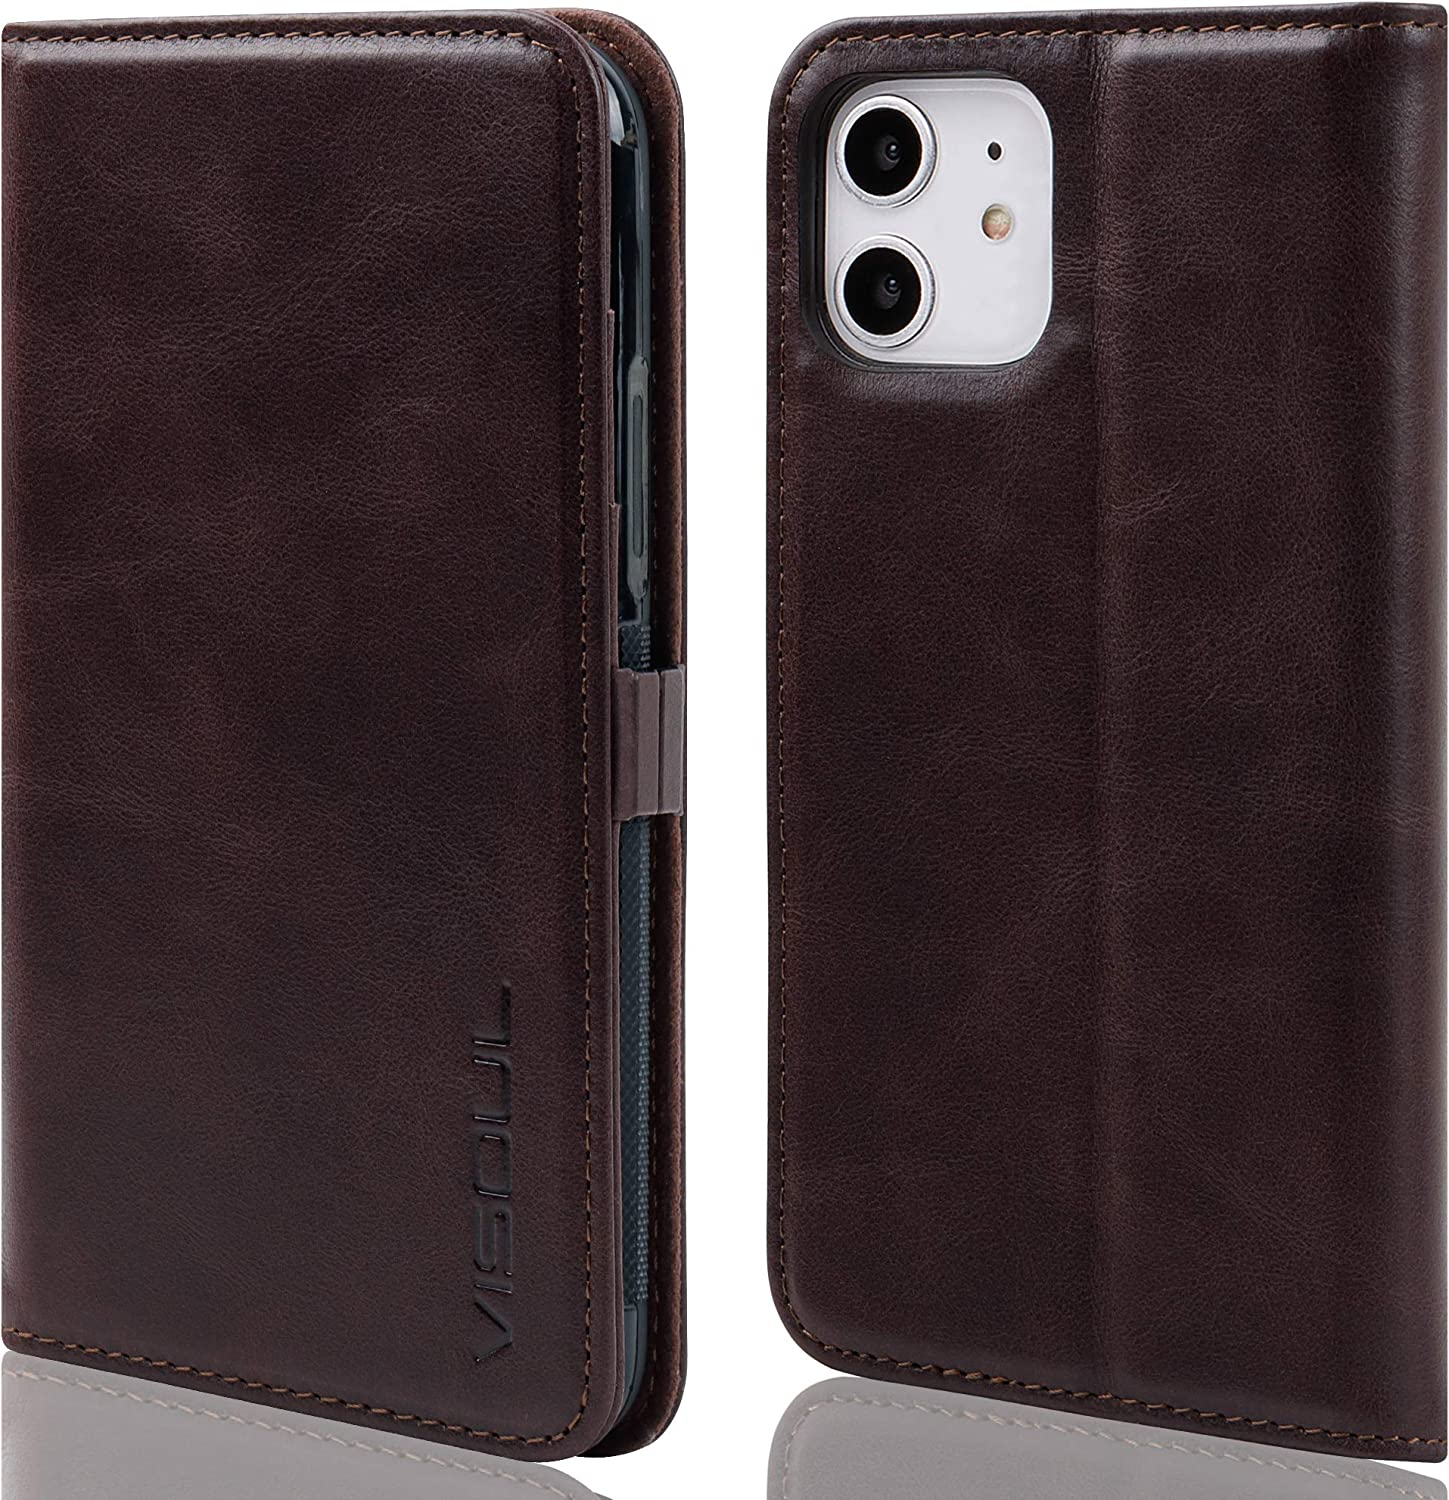 VISOUL iPhone 11 Case Mail order Wallet with Women and Men Holder for Max 86% OFF Card